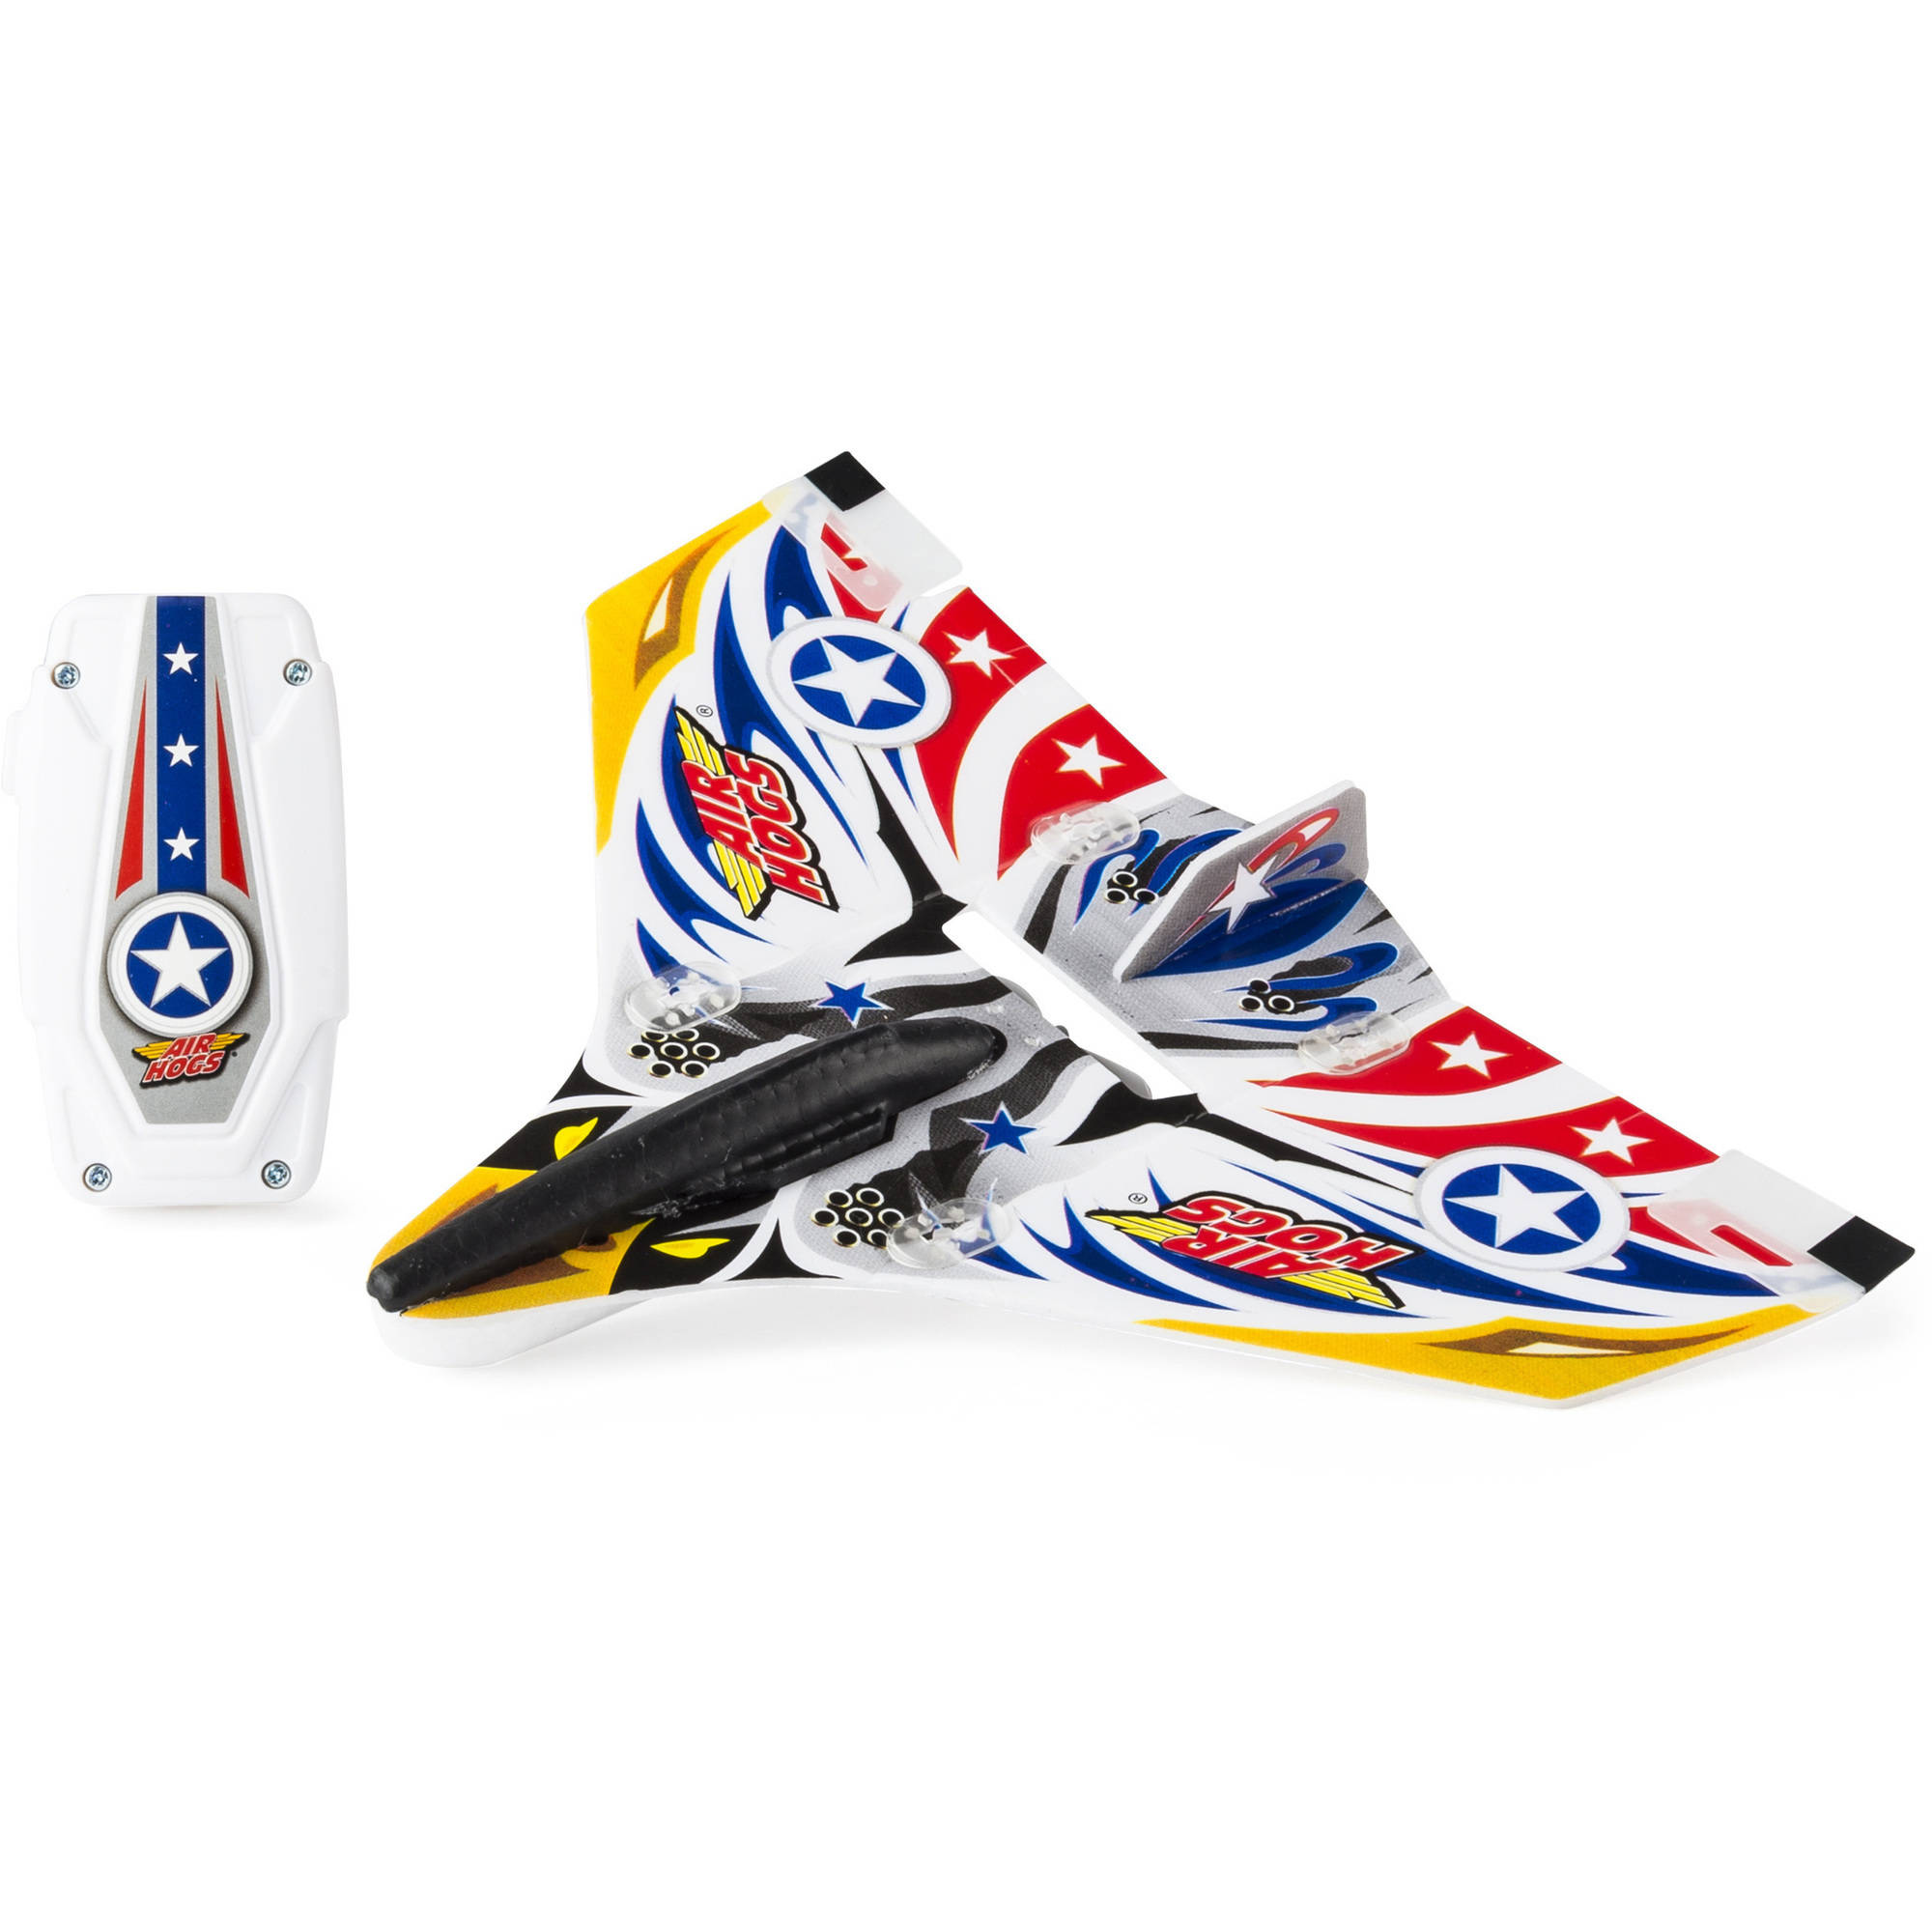 Air Hogs E-Charger, Patriot by SPIN MASTER TOYS FAR EAST LIMITED